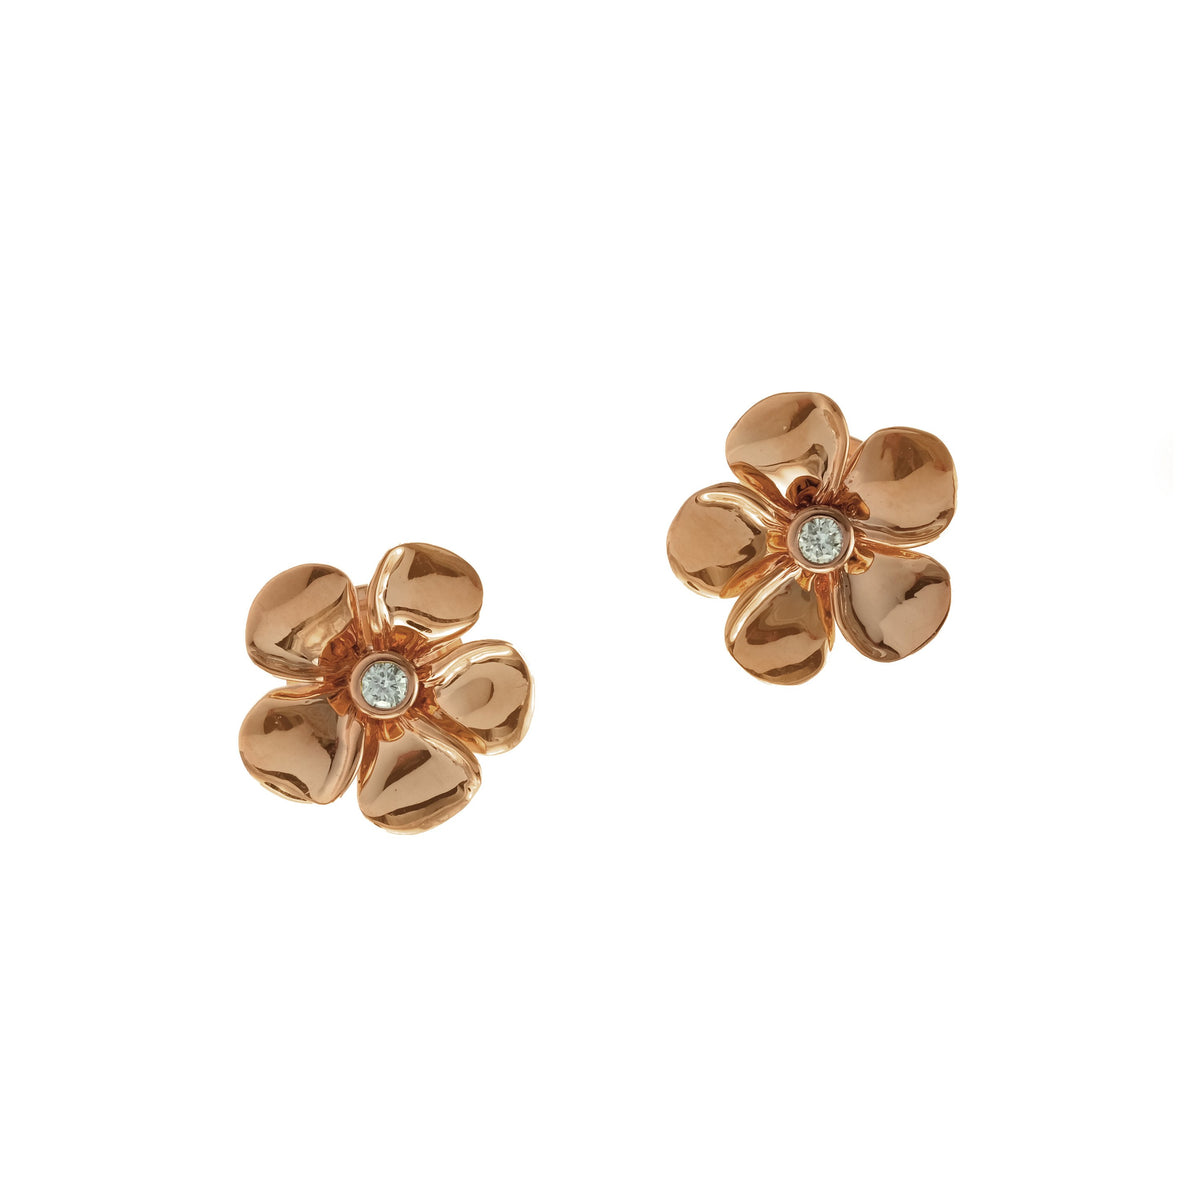 Diamond Kalachuchi Earring, Small, Shiny Finish (available in yellow, white, and rose gold)